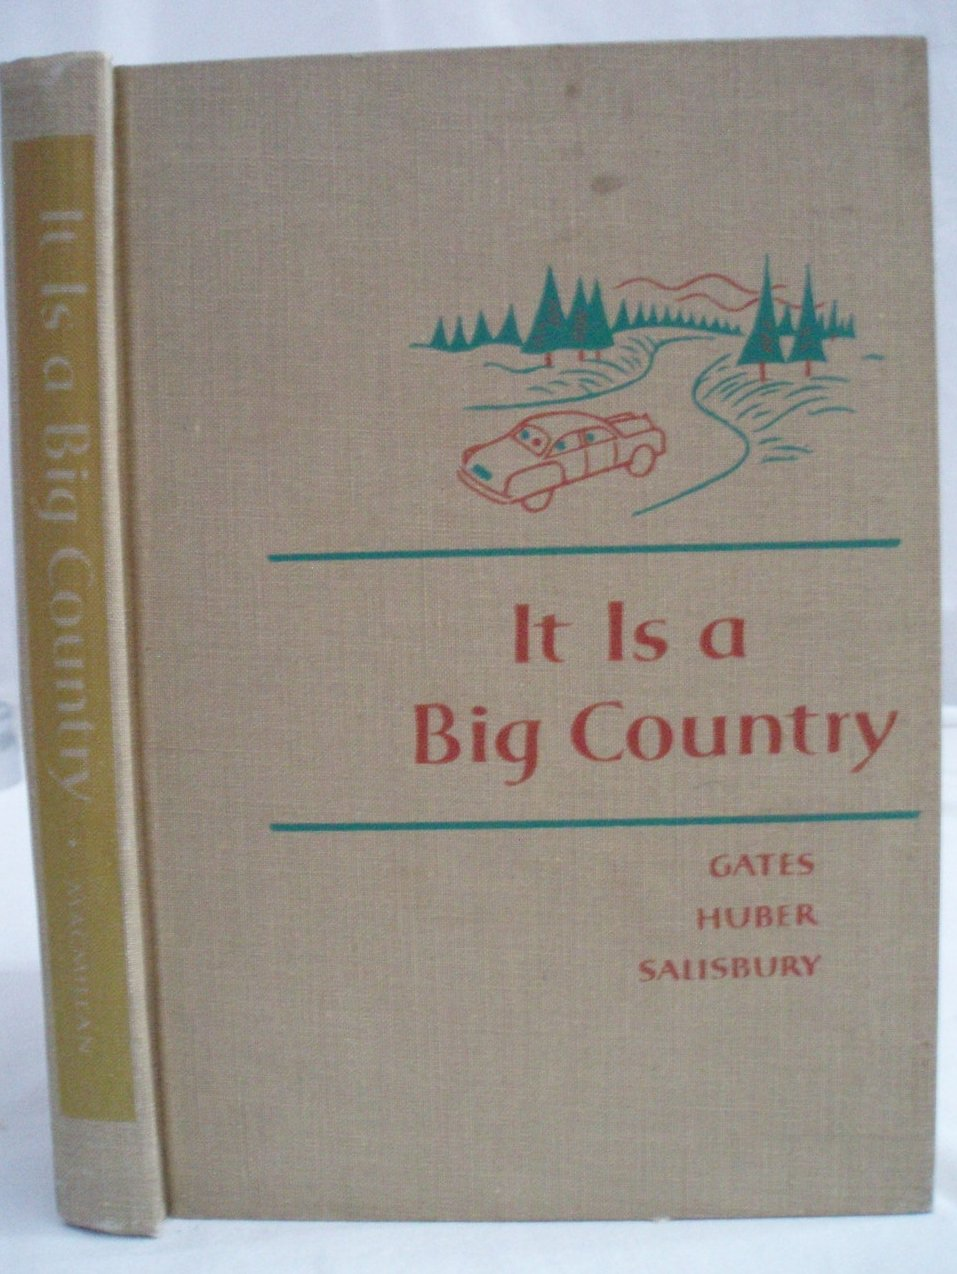 Children's 2nd Reader Book It Is a Big Country by A Gates 1958